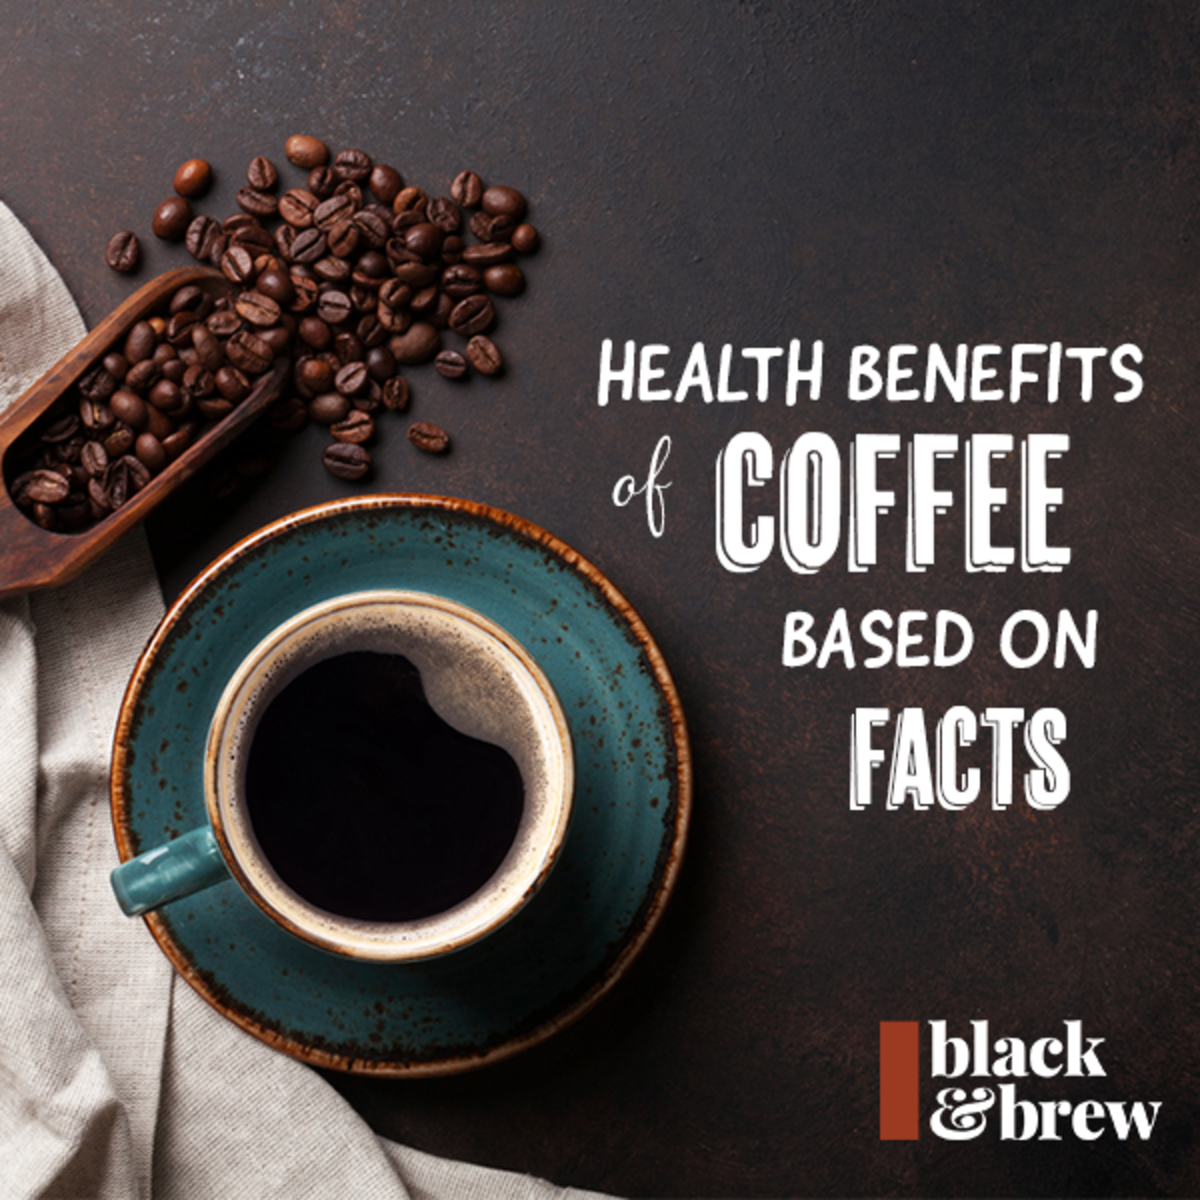 the Journal Heart, indicates that people who consume three to five cups of coffee a day have the lowest risk of clogged arteries and heart attacks.